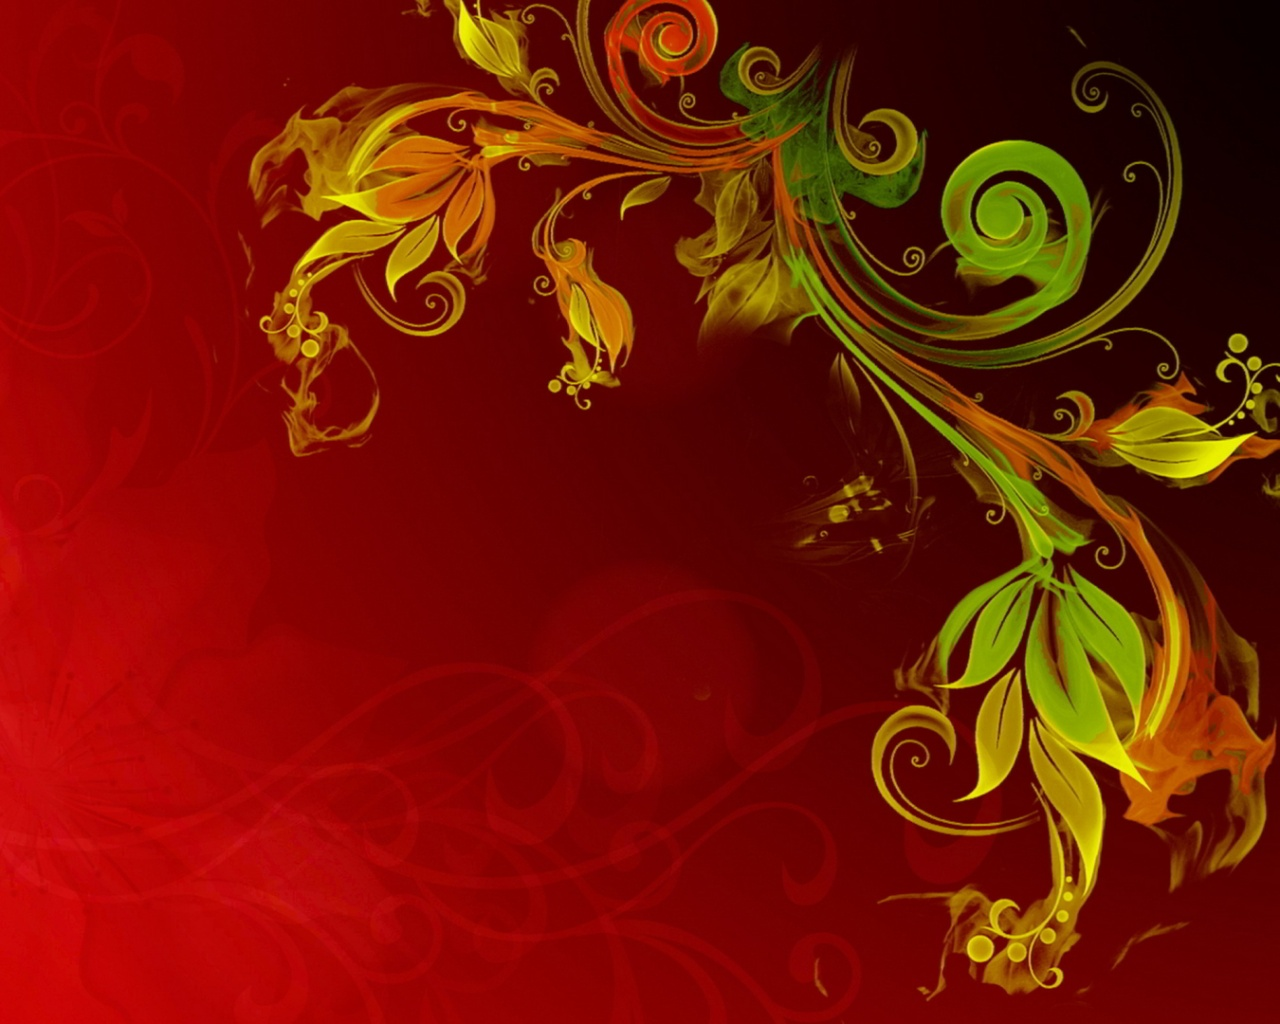 Abstract swirl flowers Wallpaper in 1280x1024 5:4